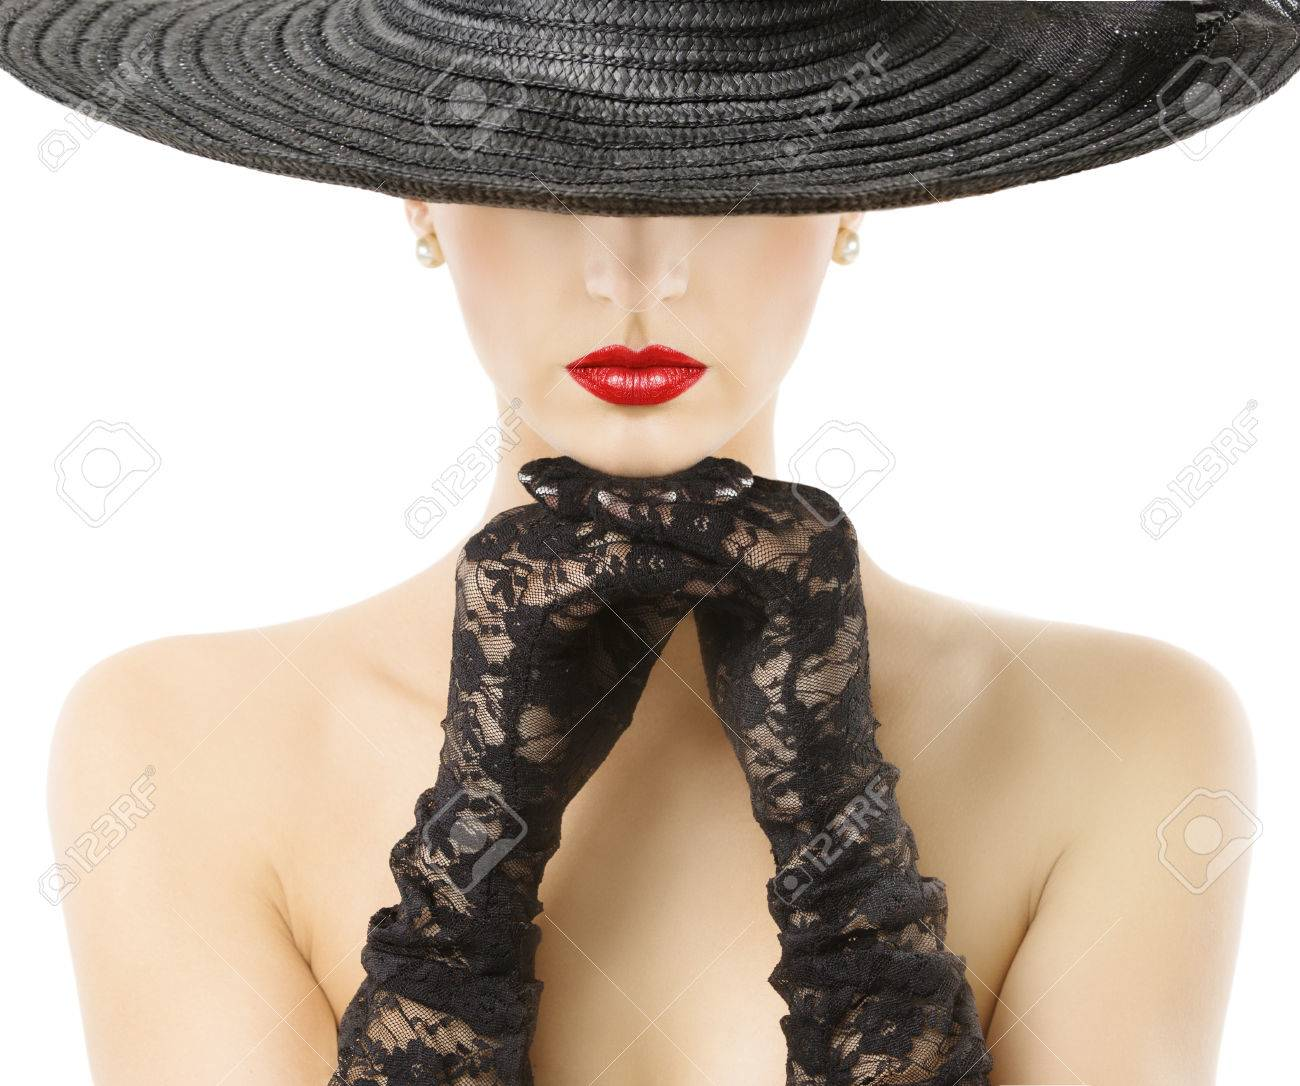 68bf9308b68 Stock Photo - Woman Gloves Wide Brim Hat Red Lips